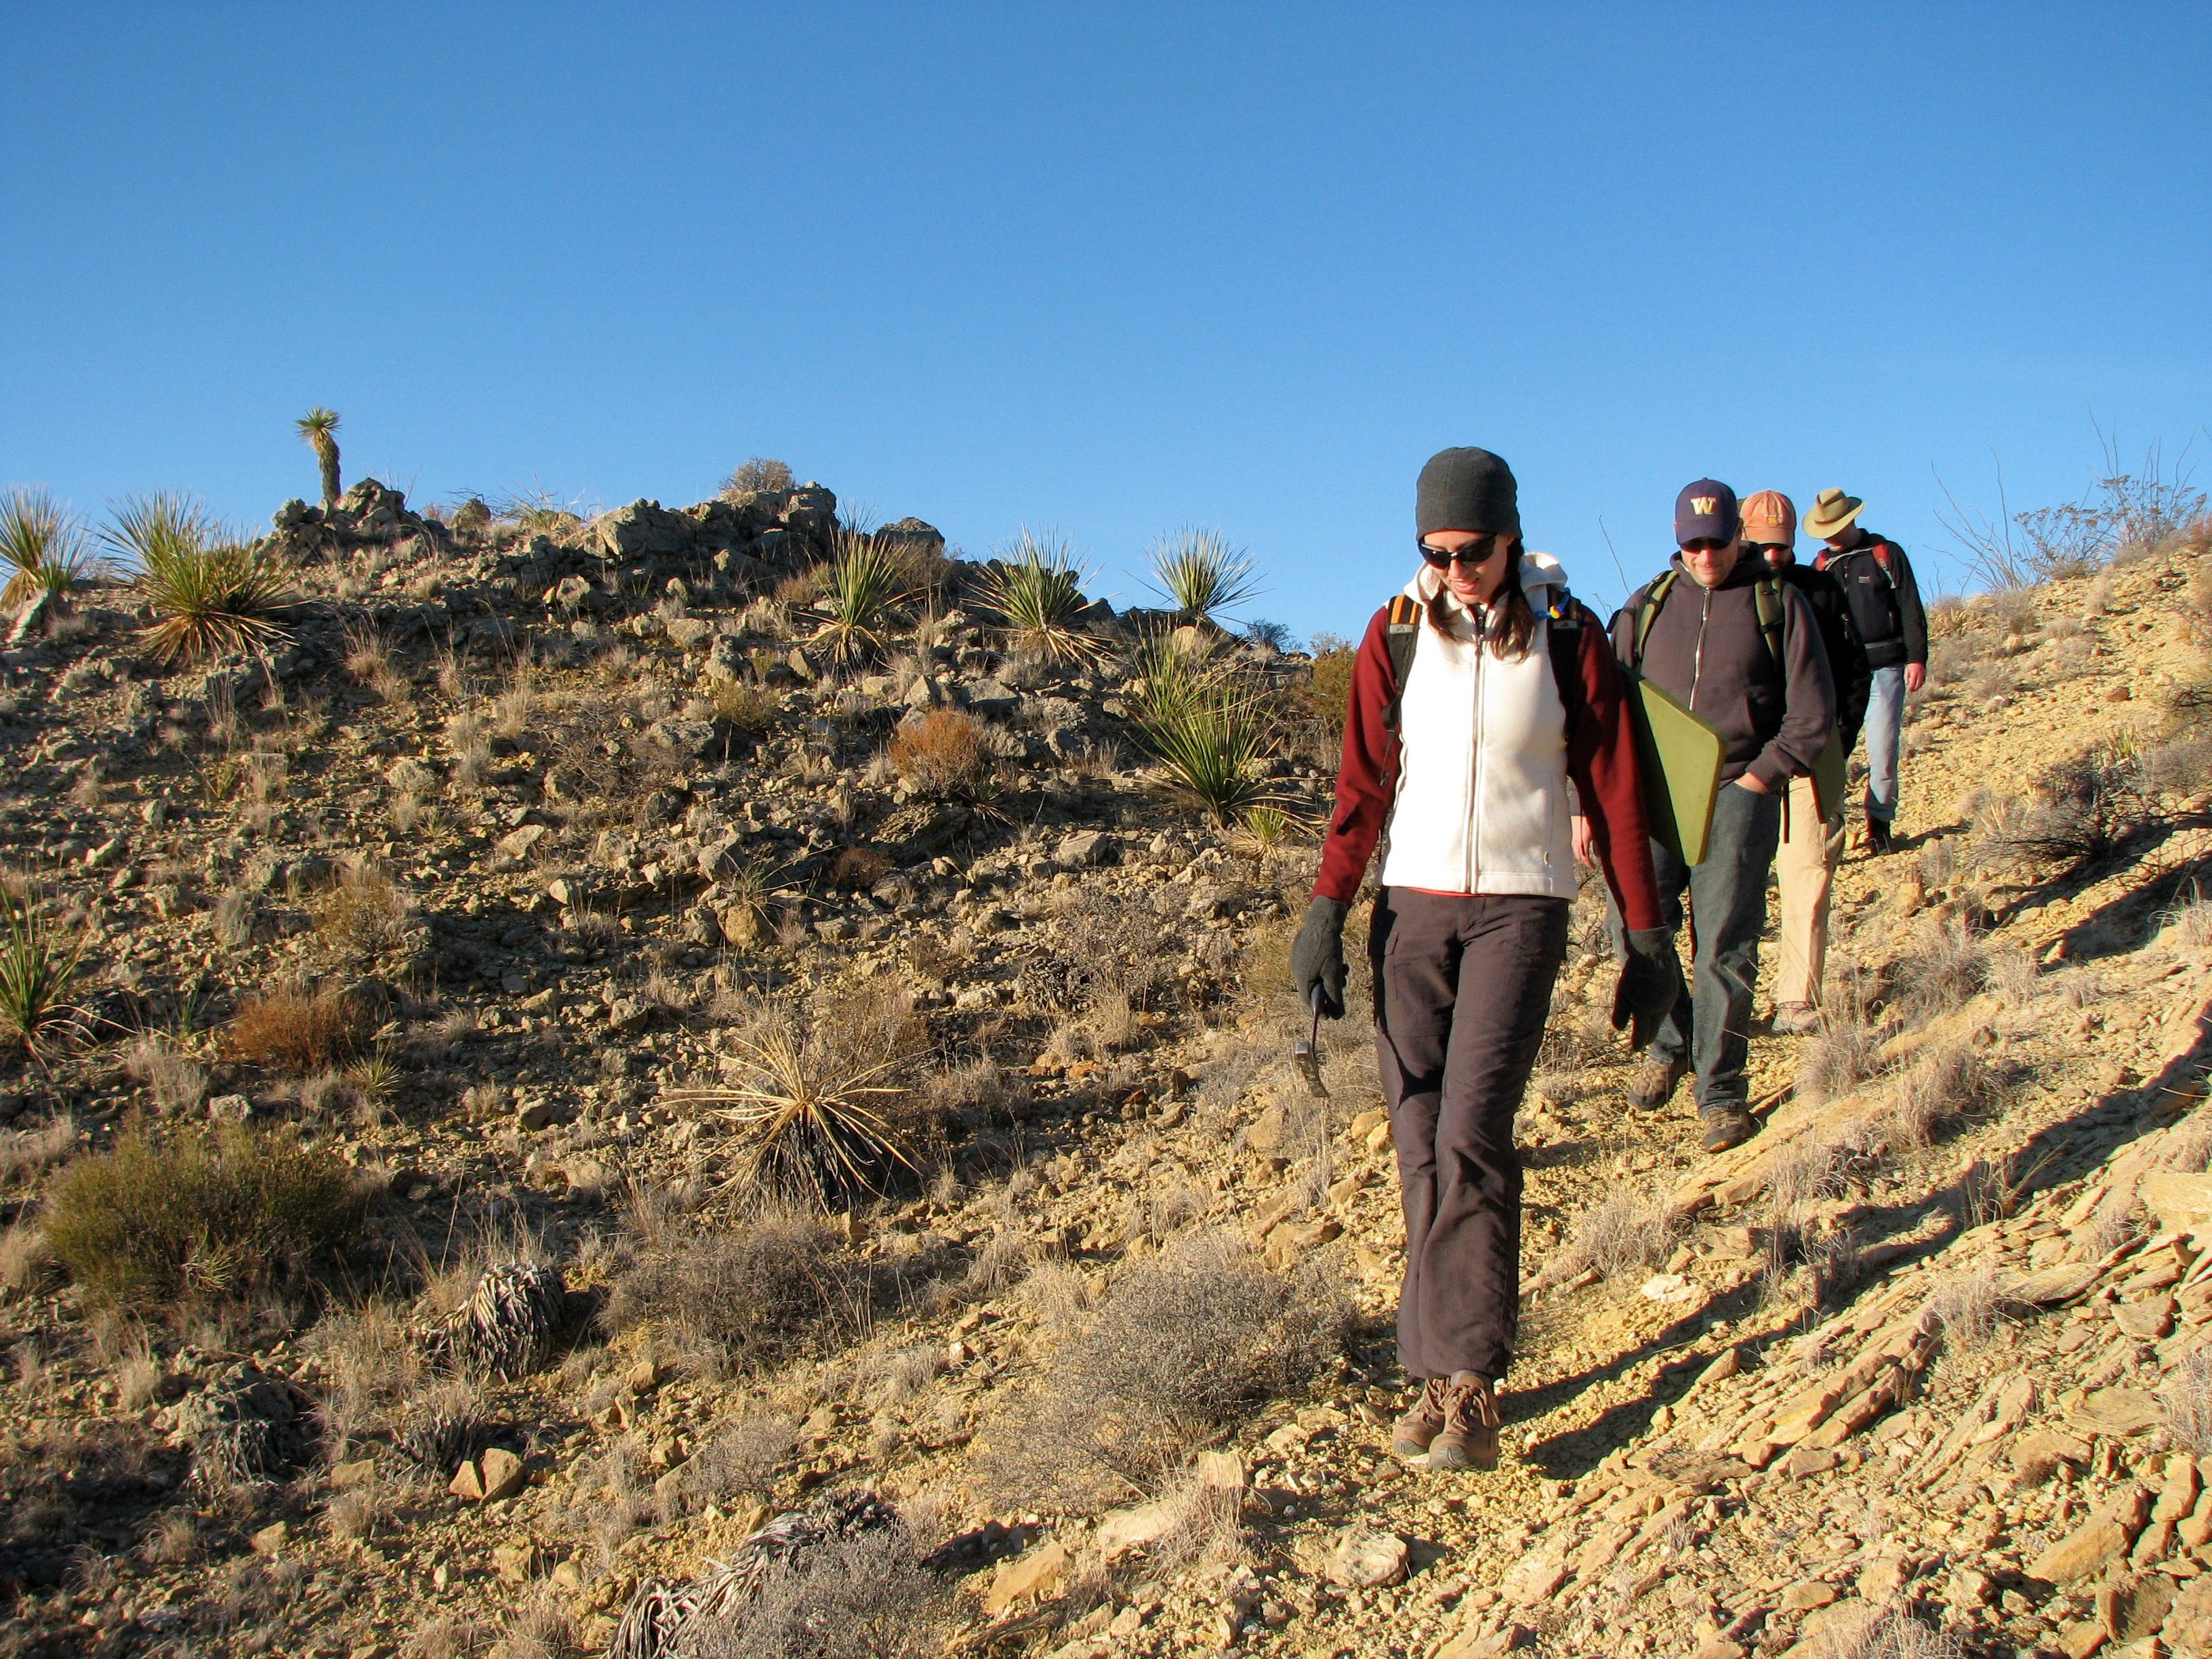 Michelle Stocker hiking to fossil dig site in West Texas.